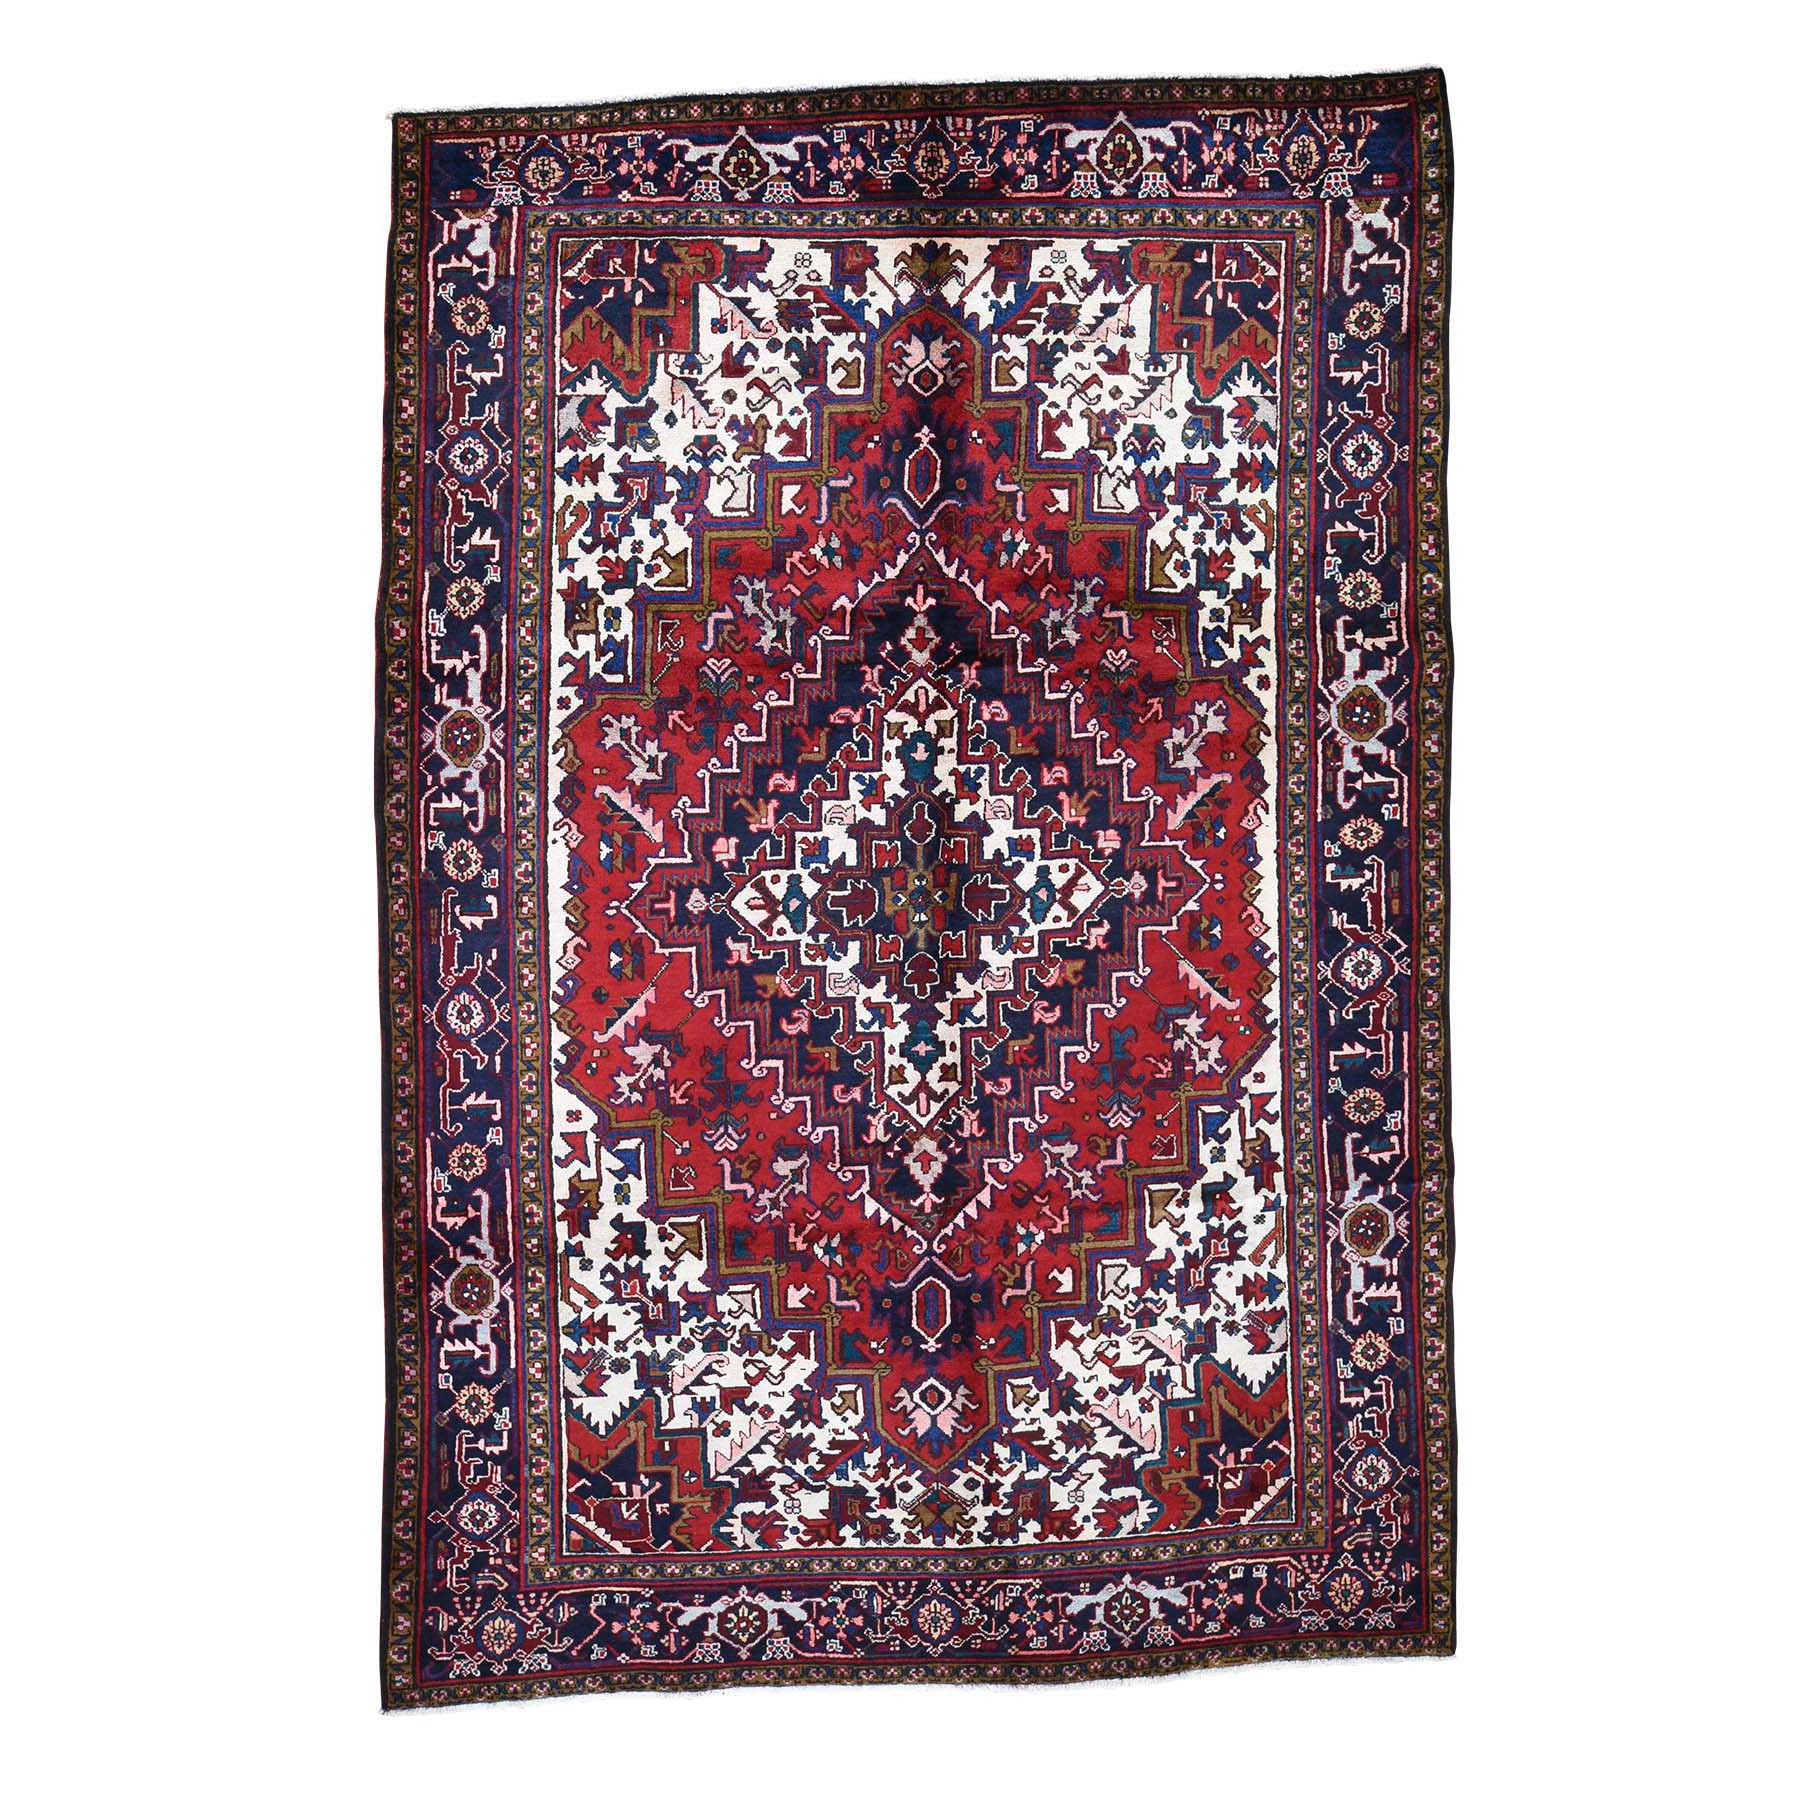 """7'6""""X11'1"""" Red & Ivory Semi Antique Heriz Excellent Condition Hand-Knotted Oriental Rug moadea87"""